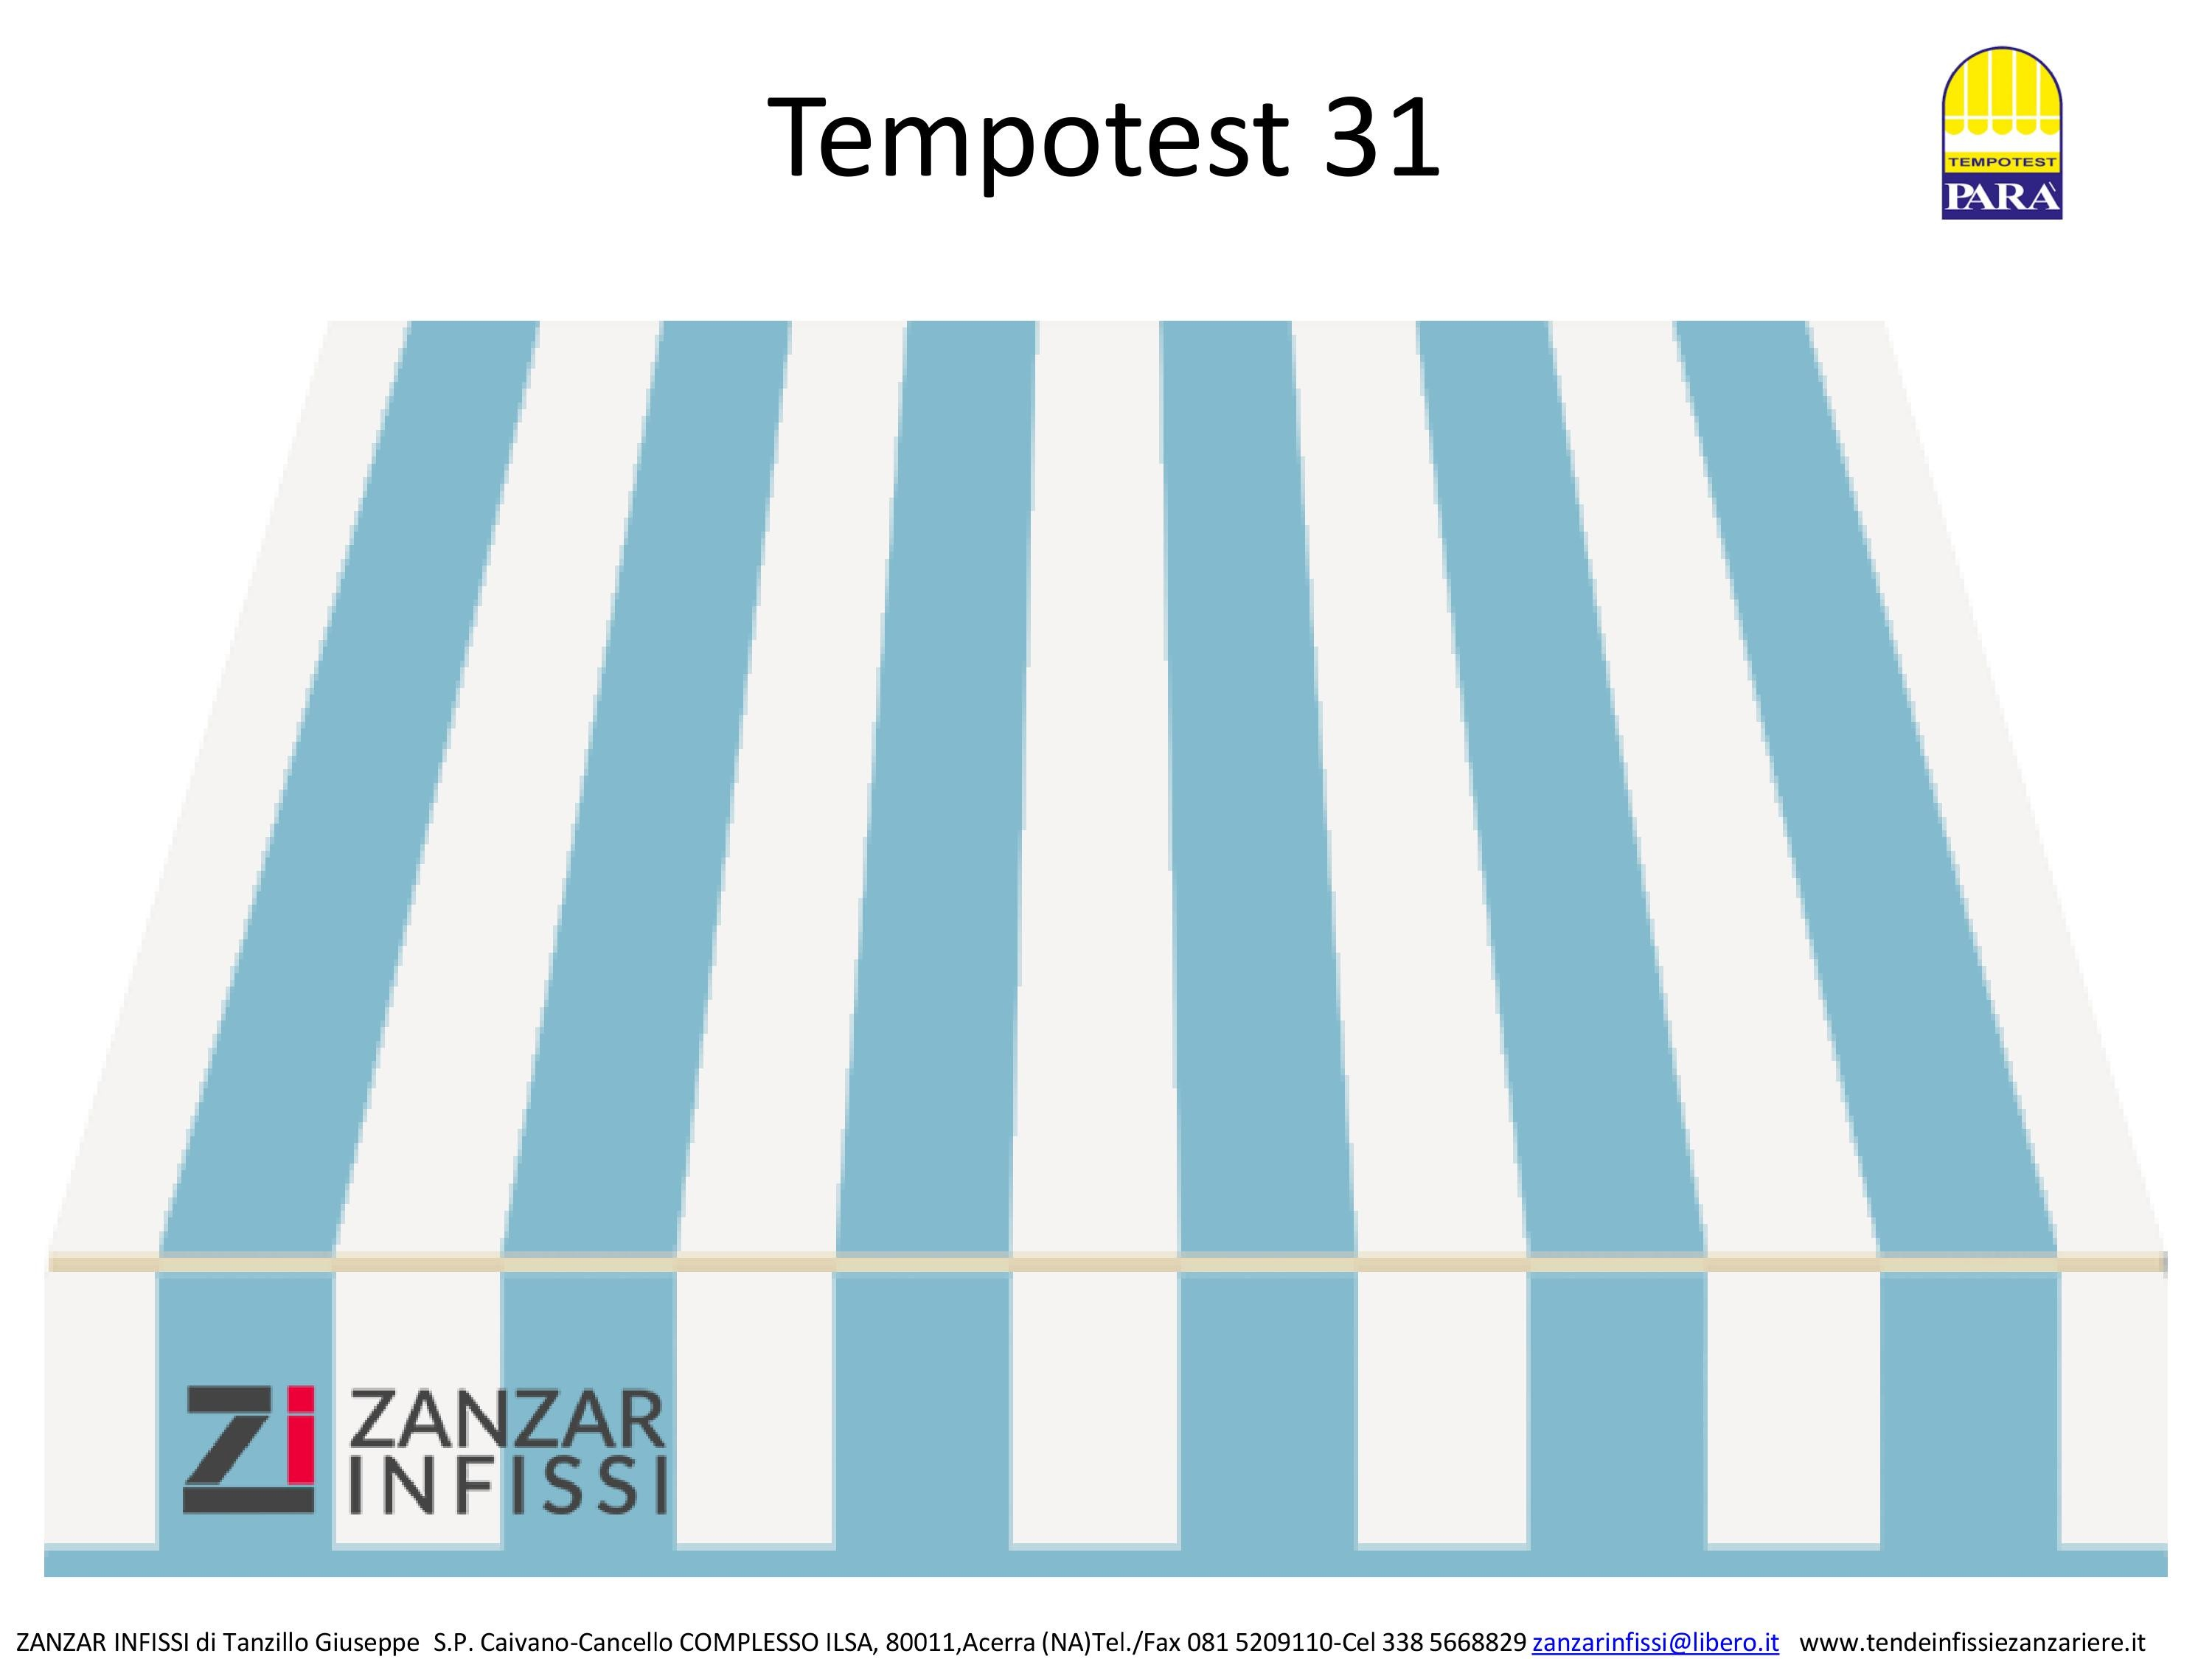 Tempotest 31